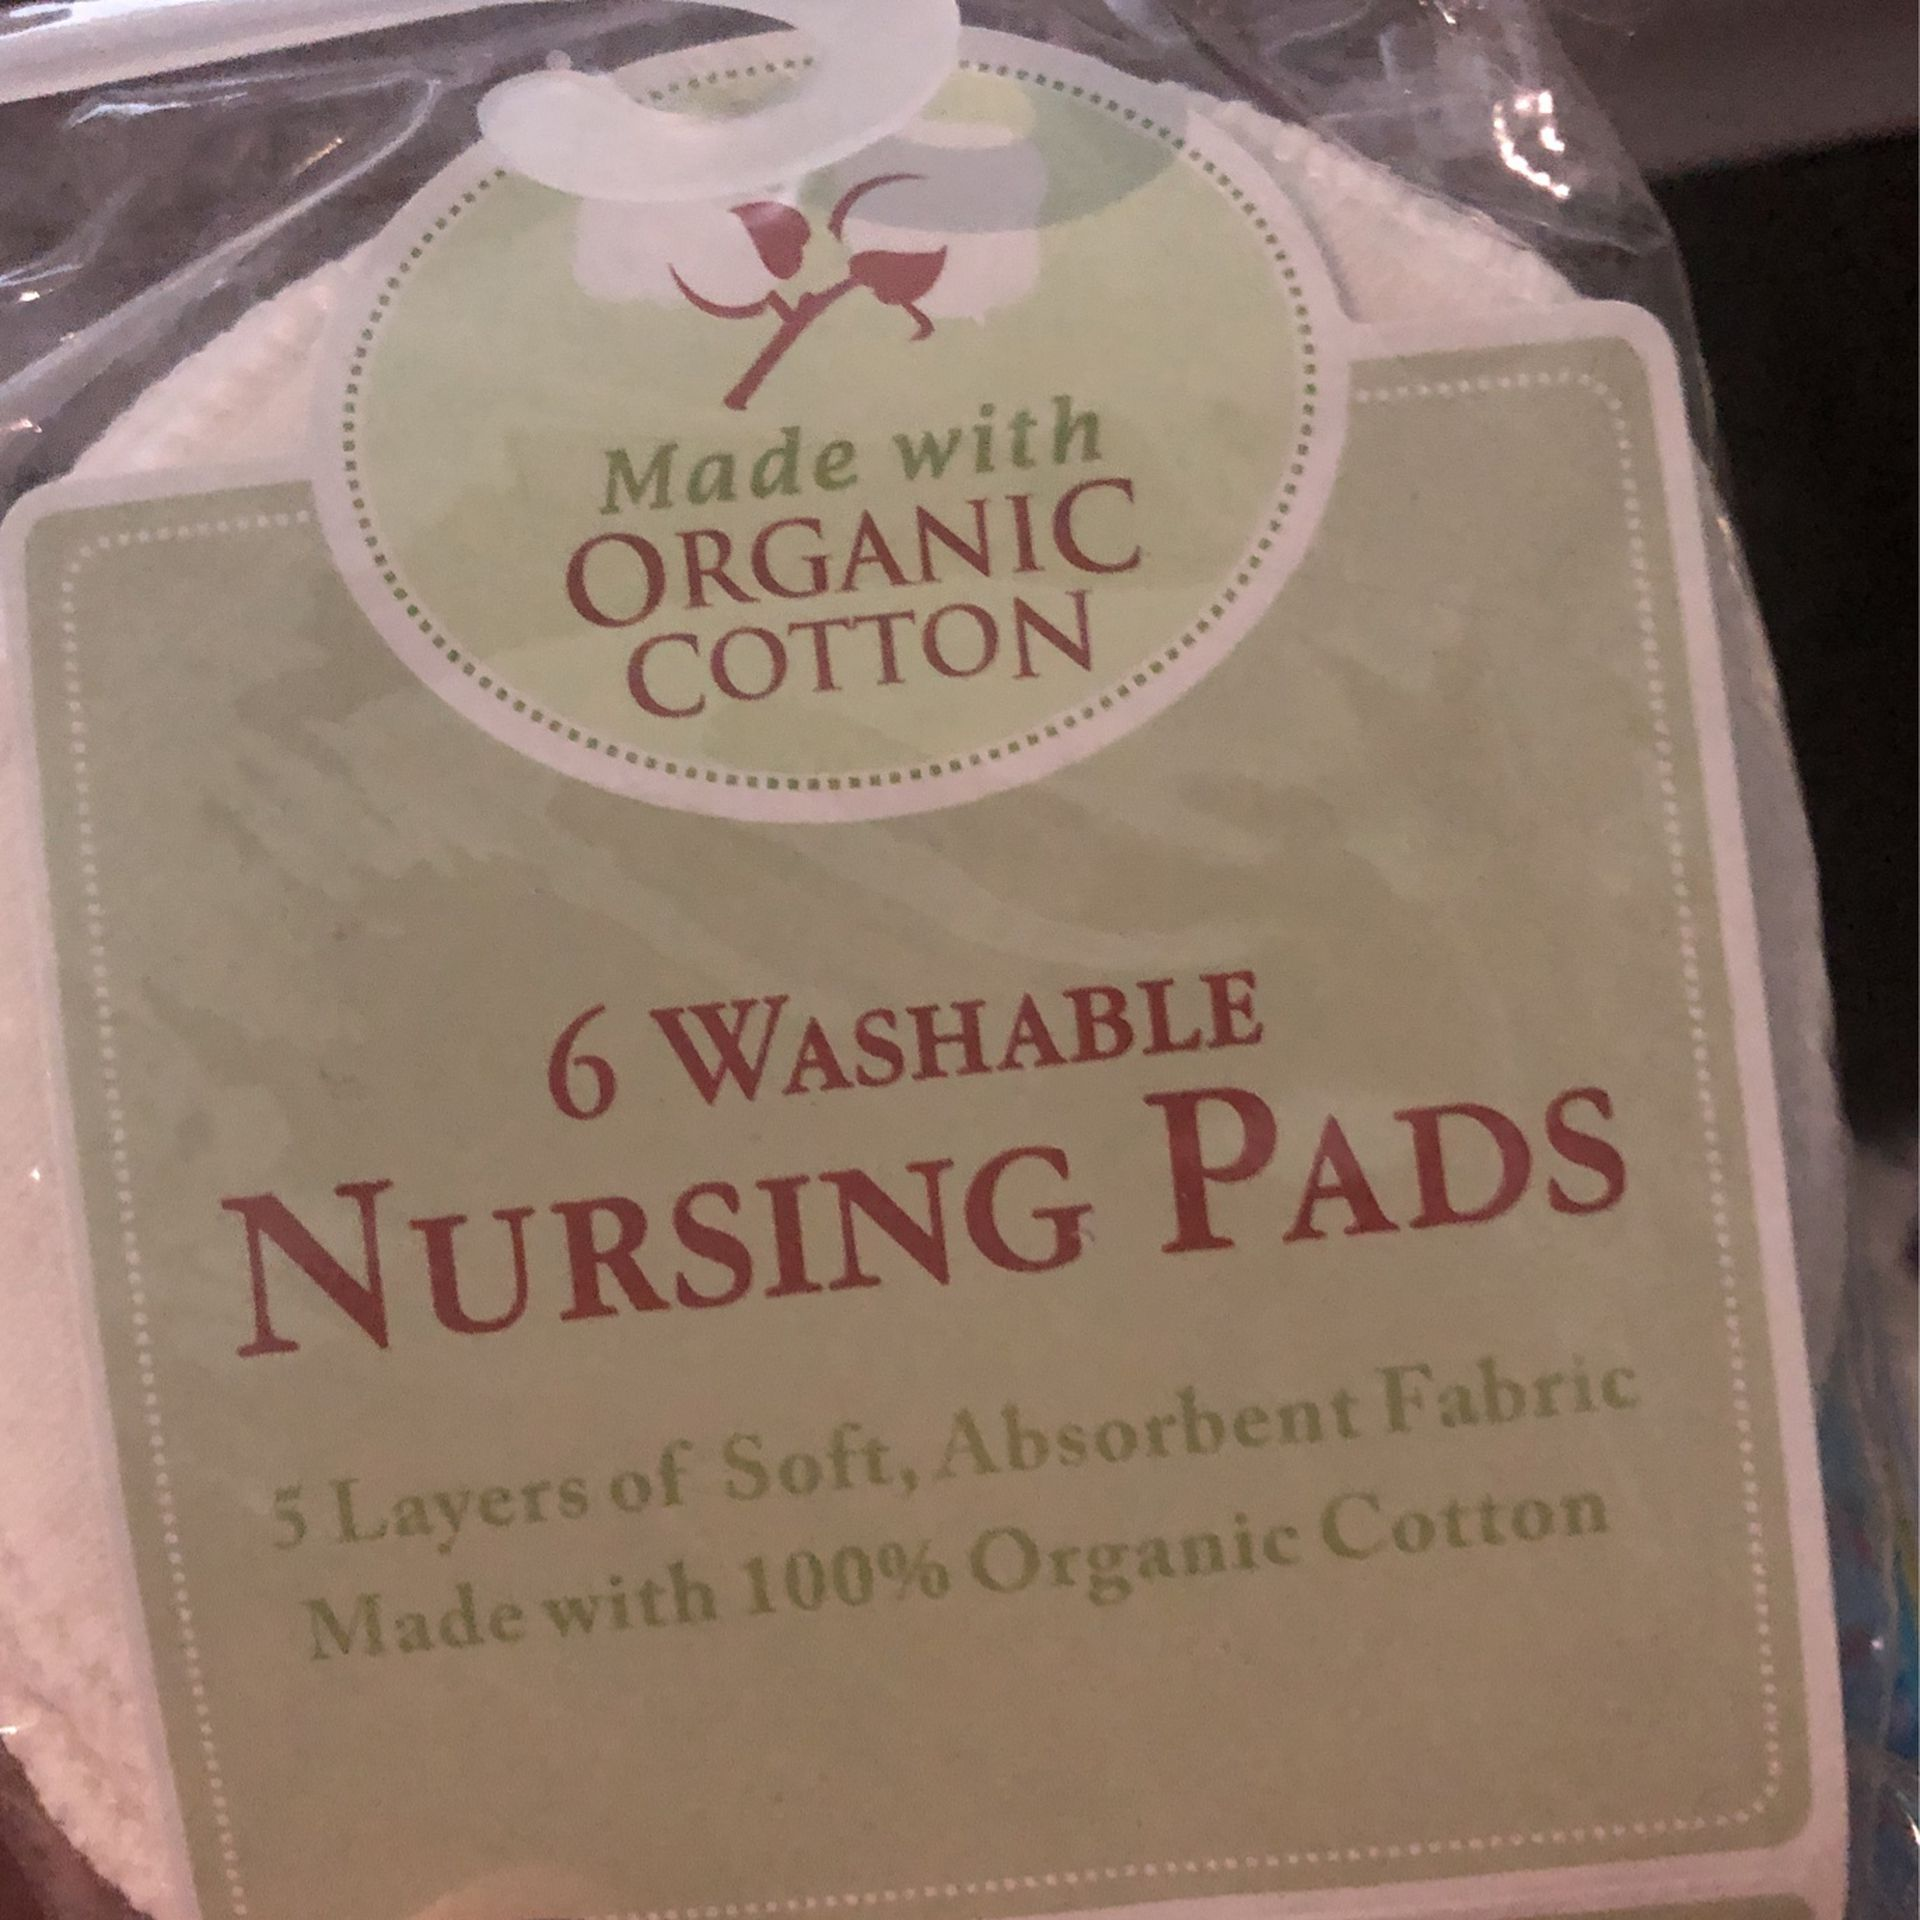 Lansino Stay Dry For Breastfeeding Pads, Washable Nursing Pads